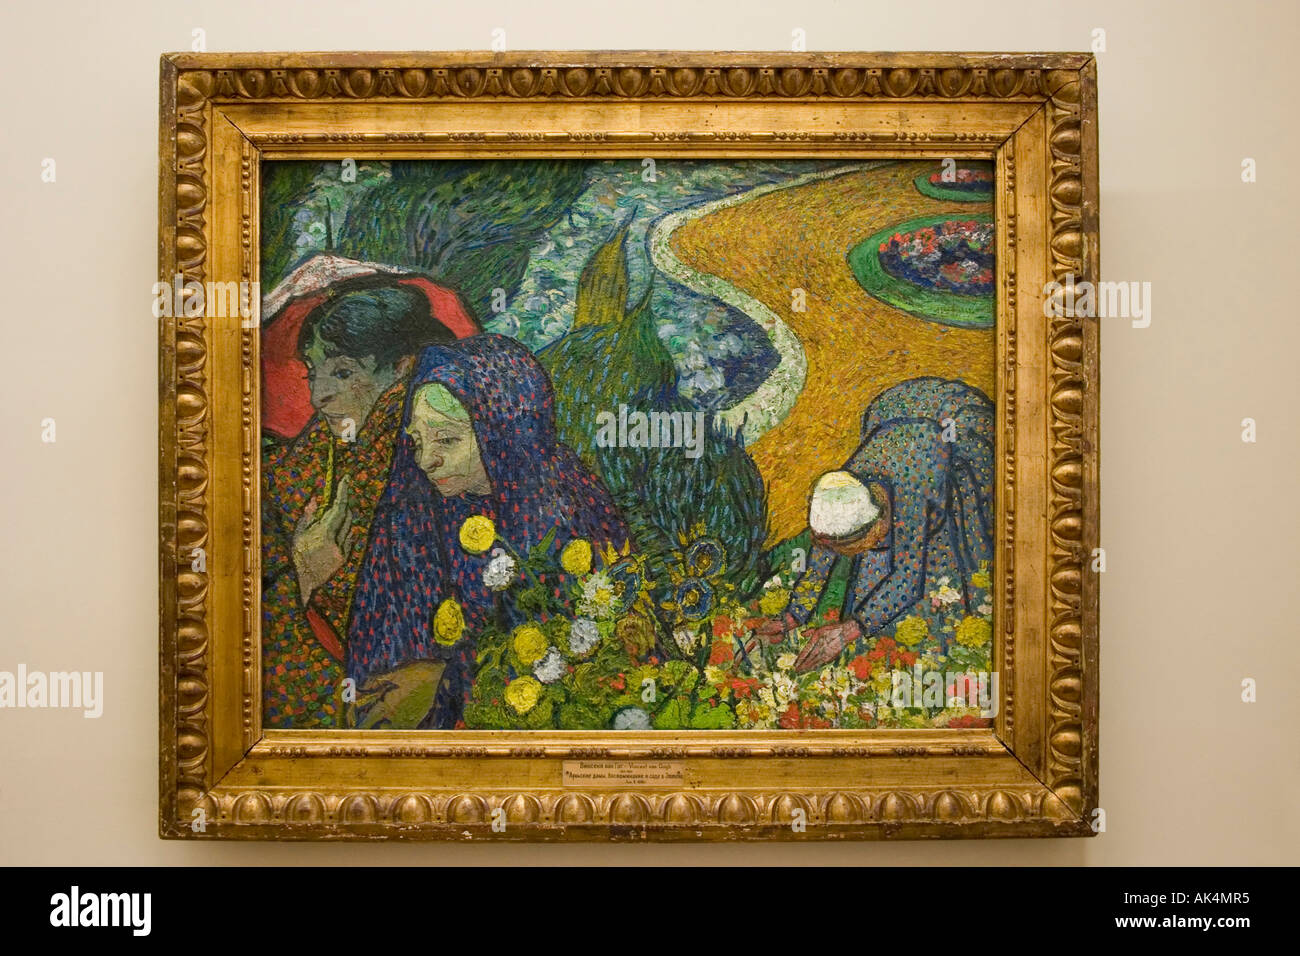 Memory Of The Garden Of Eden ( Ladies Of Arles ), Vincent Van Gogh,